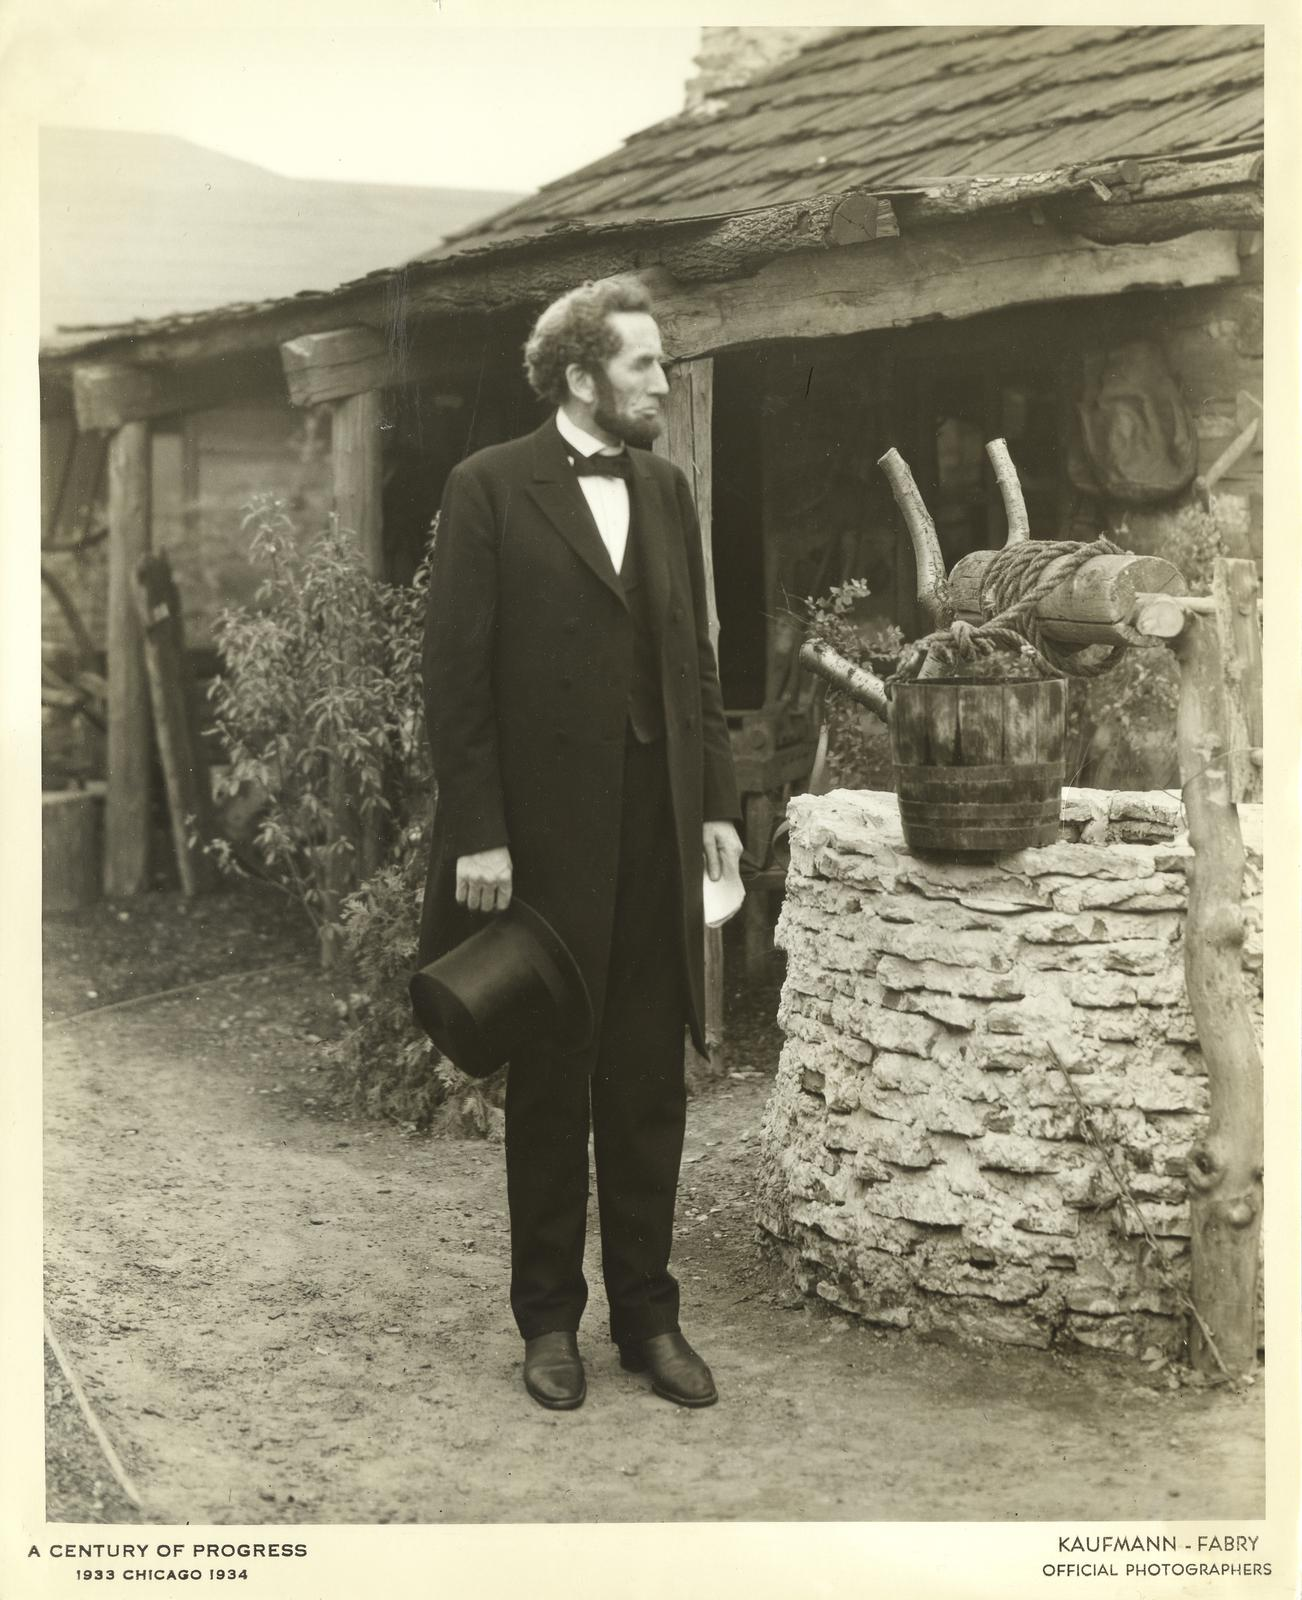 Abraham Lincoln impersonator at the Abraham Lincoln complex, Century of Progress International Exposition, 1933-1934.